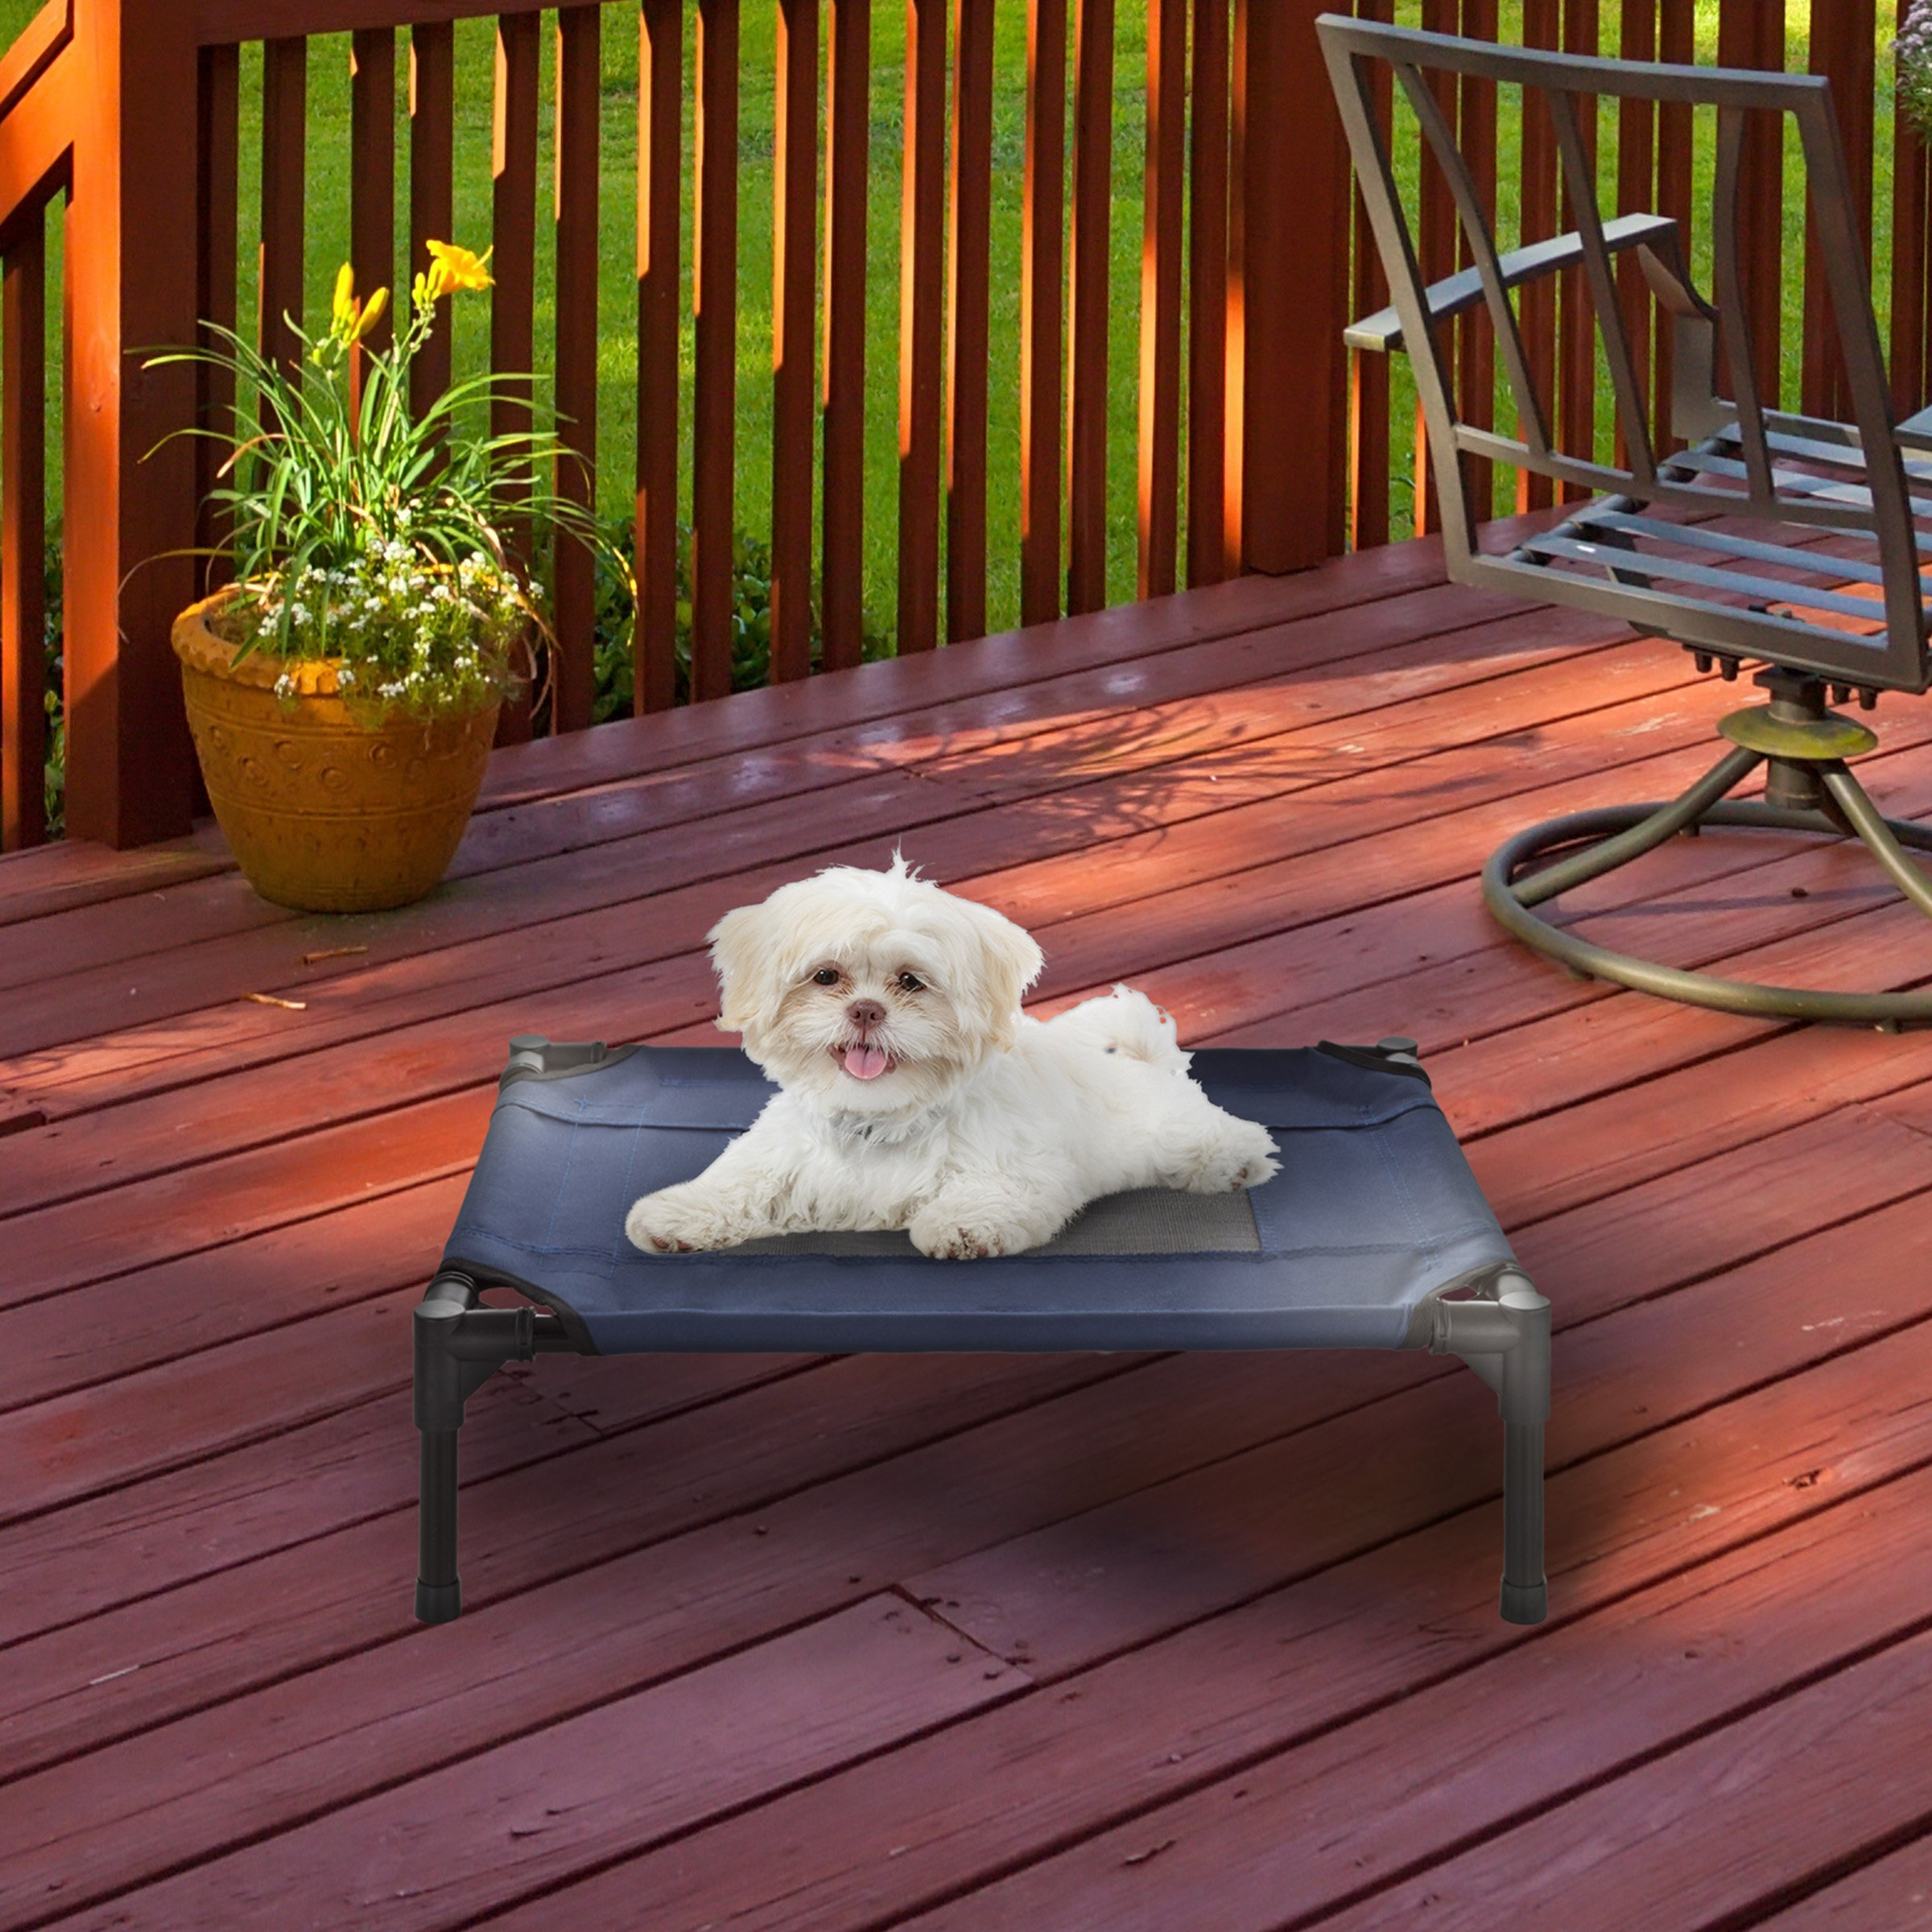 """PETMAKER Elevated Pet Bed-Portable Raised Cot-Style Bed W/Non-Slip Feet, 24.5""""x 18.5""""x 7"""" for Dogs, Cats, and Small Pets-Indoor/Outdoor Use (Blue)"""